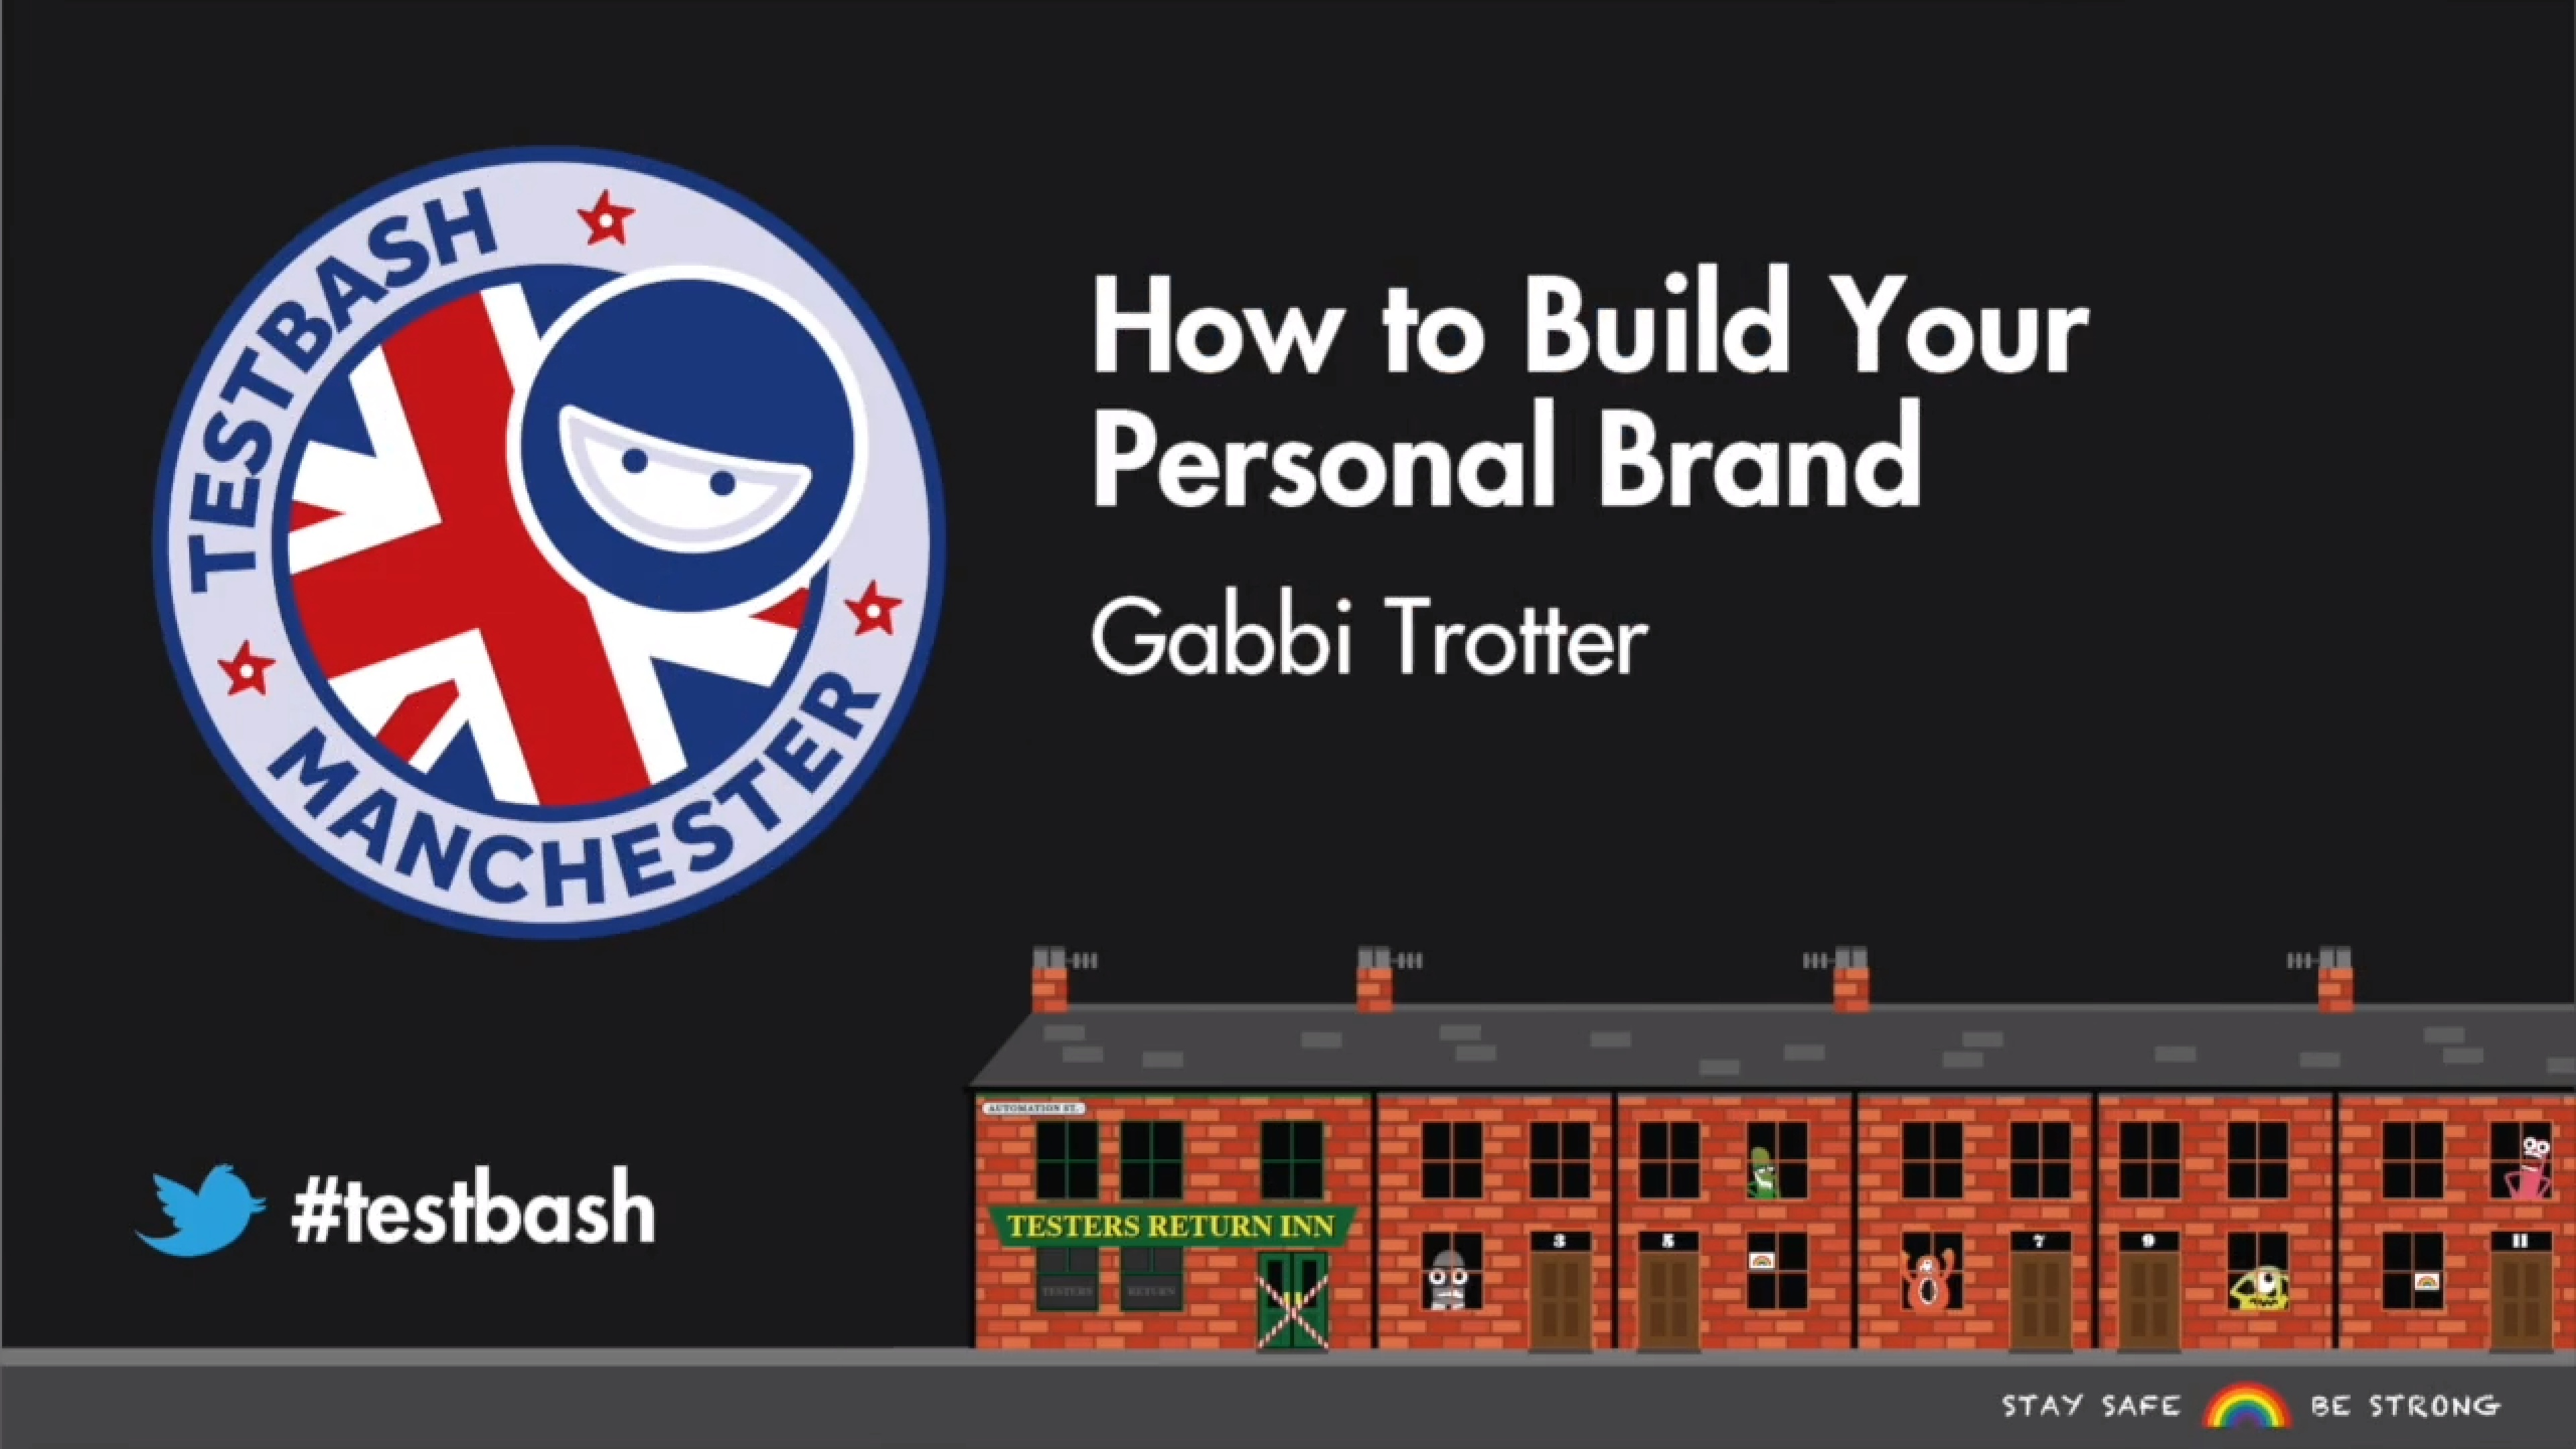 How to Build Your Personal Brand - Gabbi Trotter